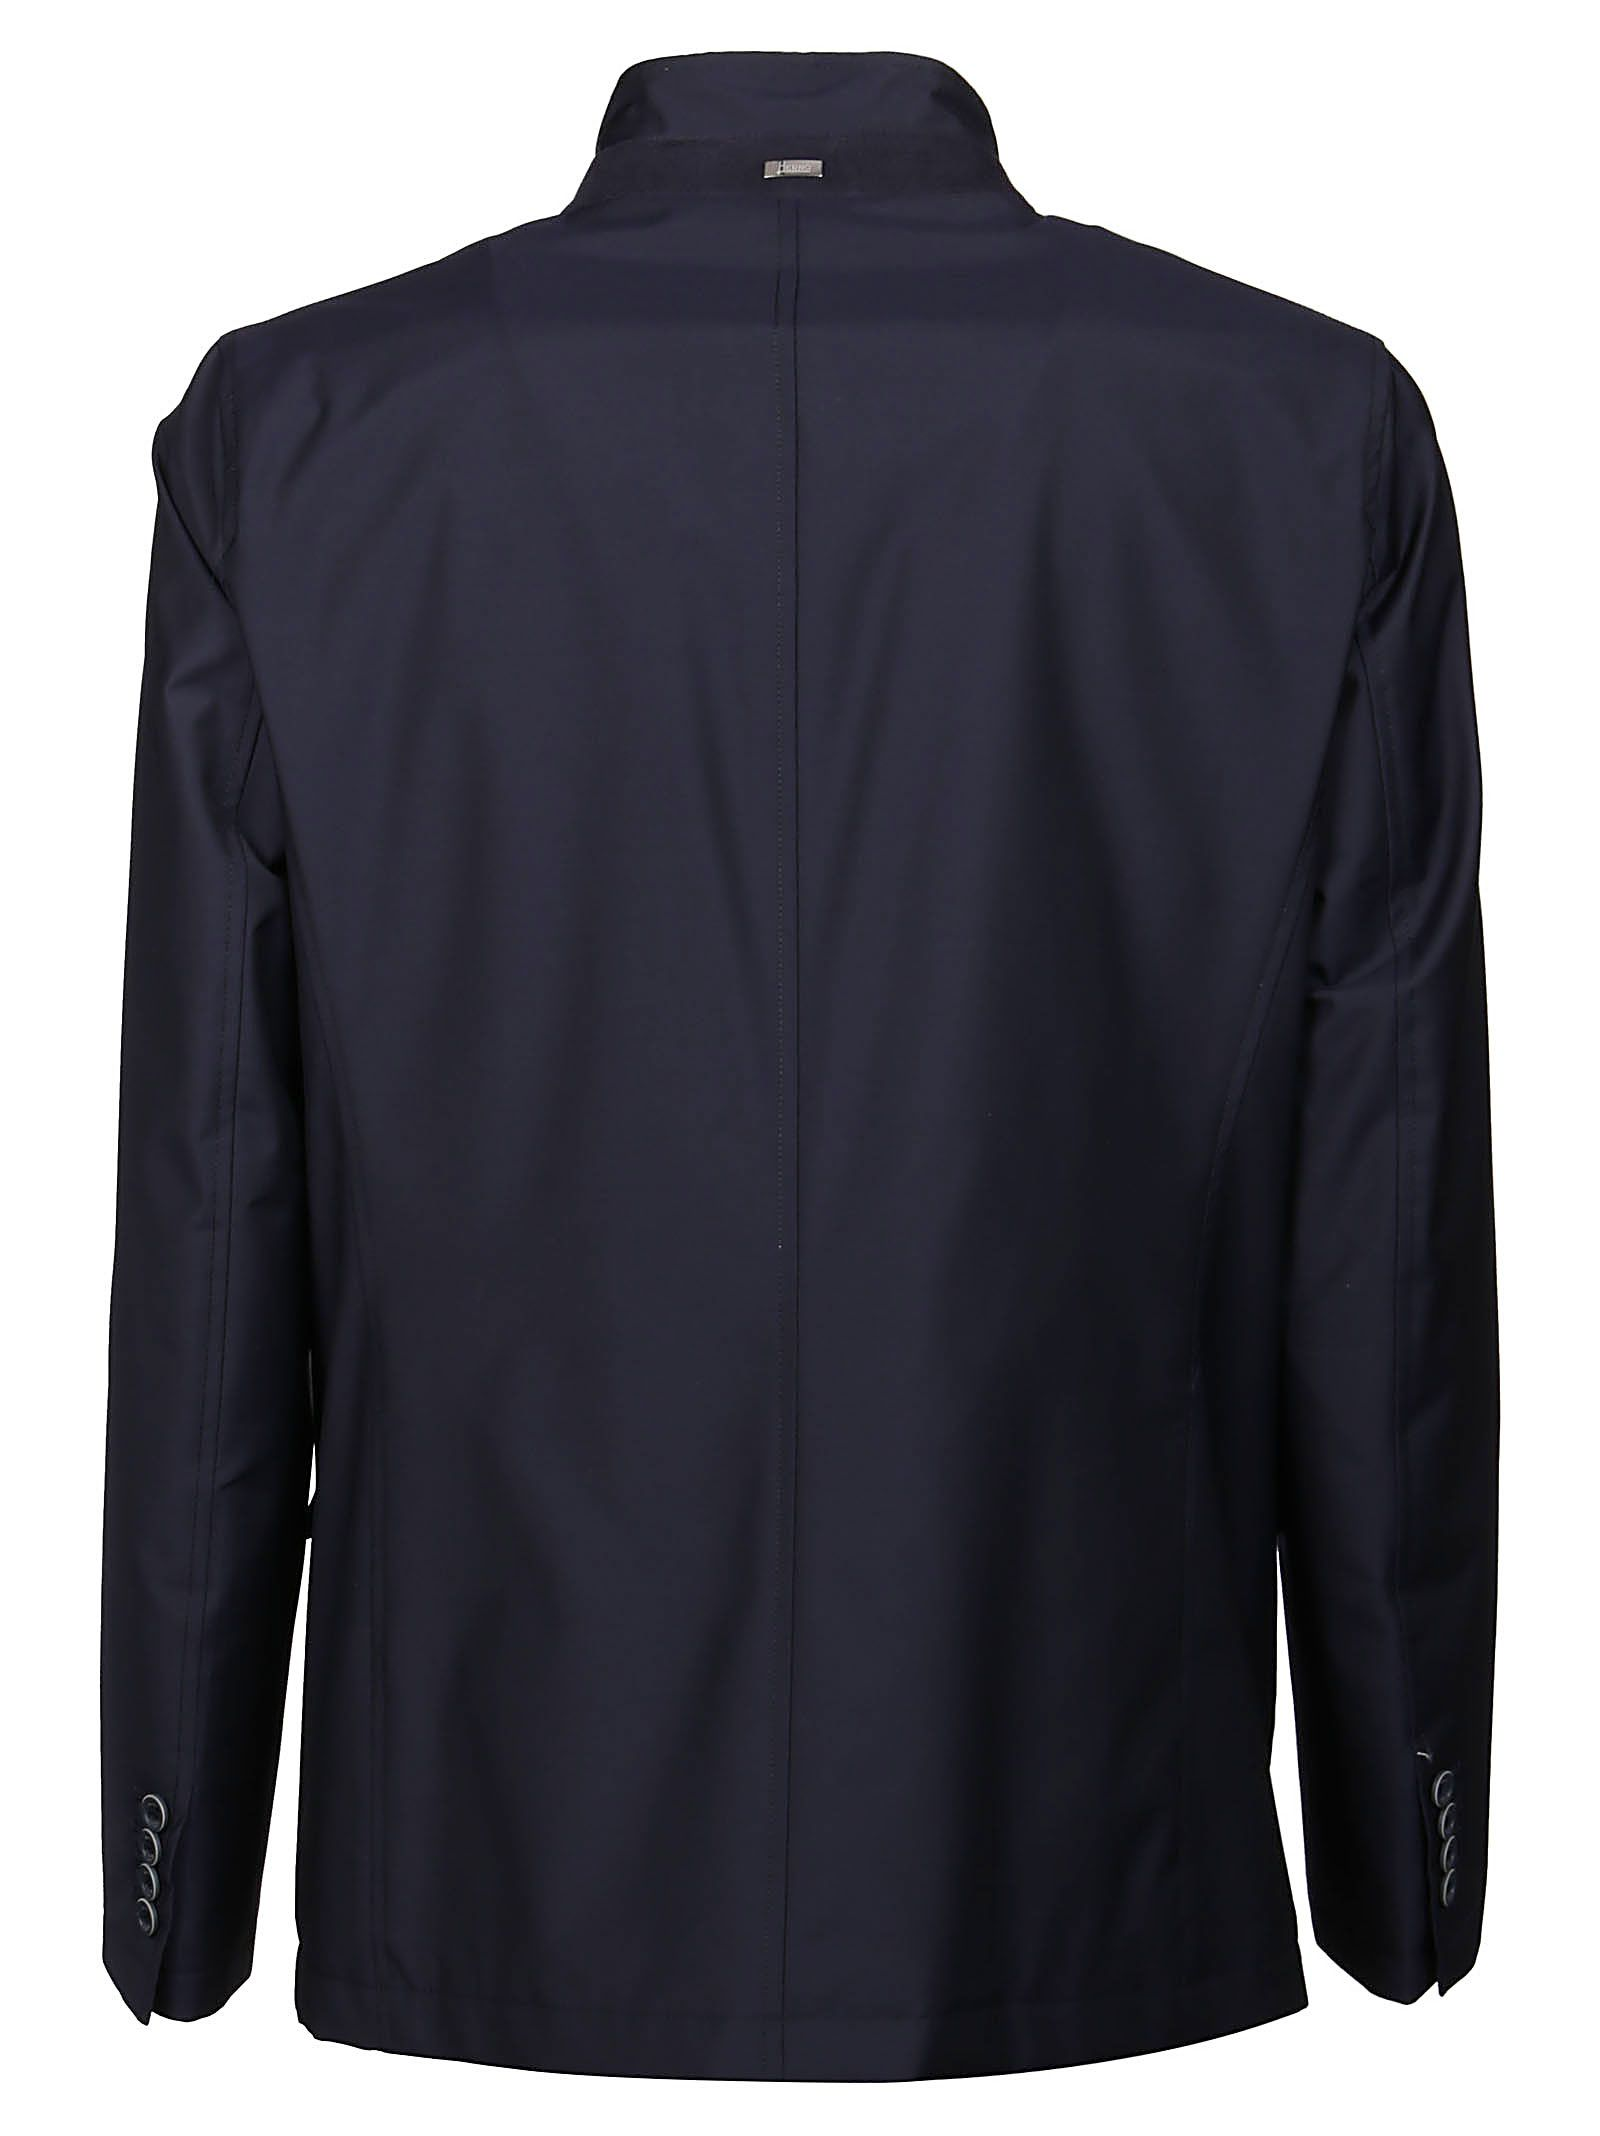 HERNO Jackets HERNO MEN'S BLUE OTHER MATERIALS OUTERWEAR JACKET